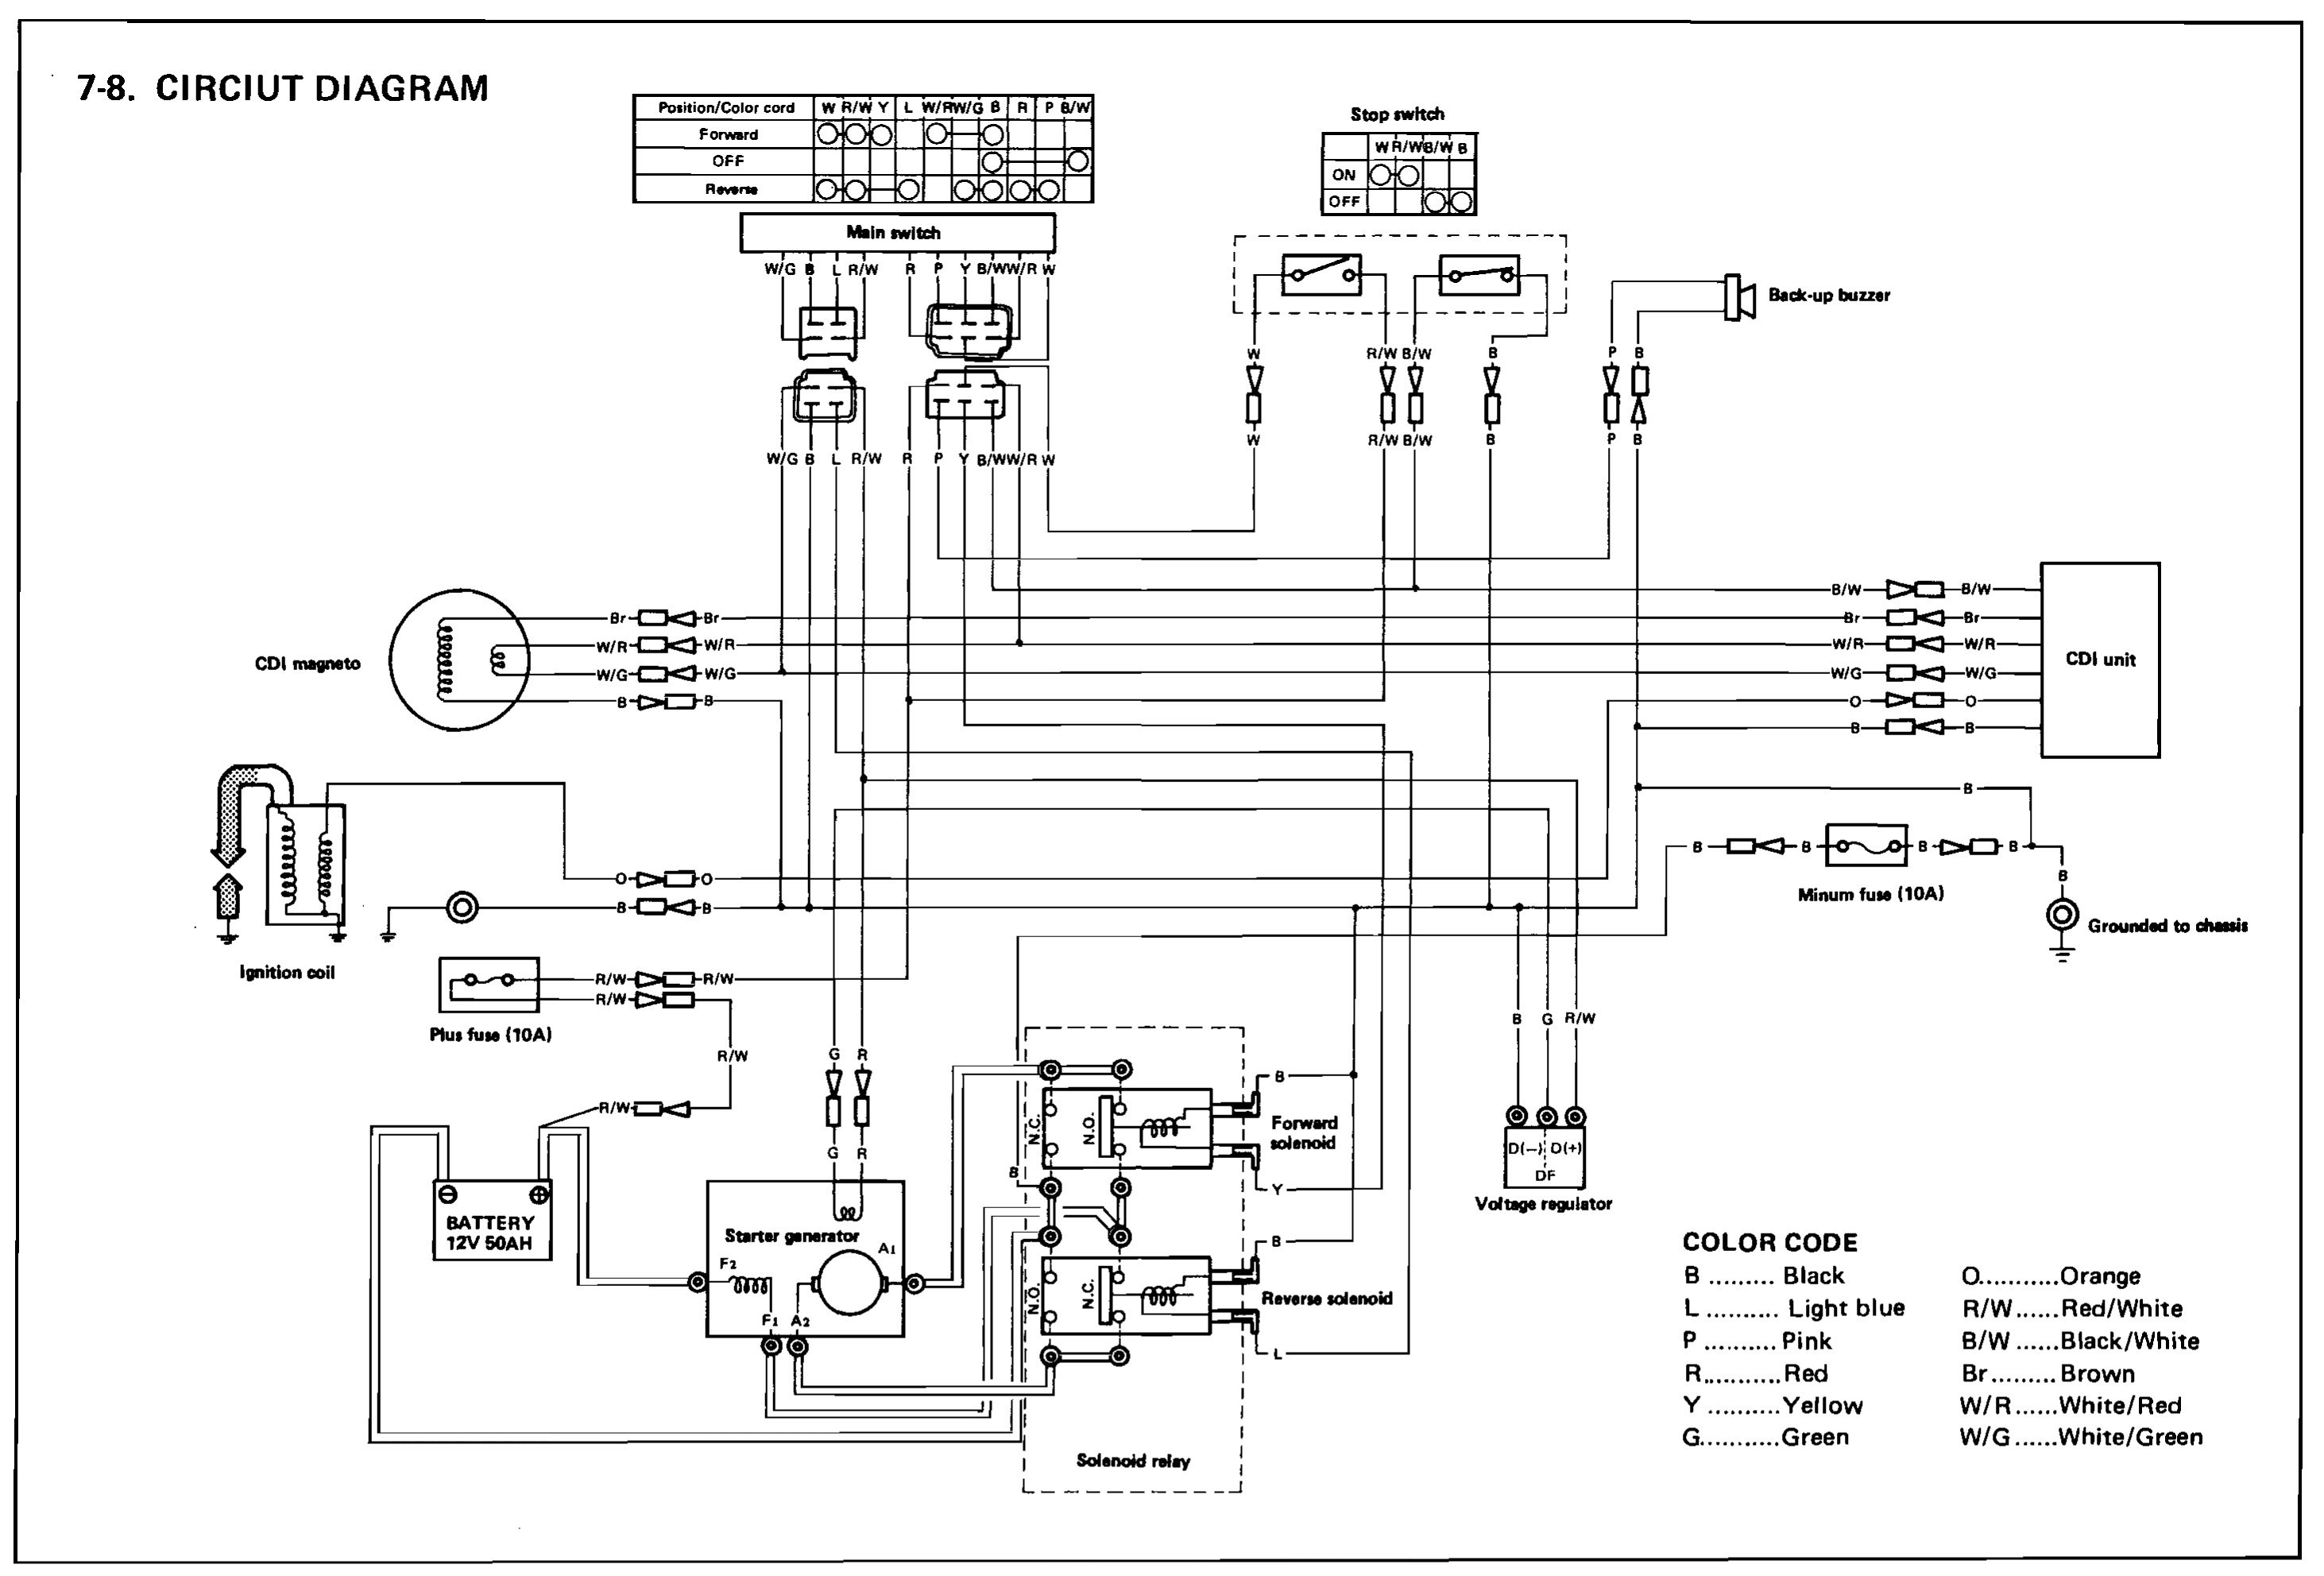 yamaha golf cart g2 wiring diagram 9 16 petraoberheit de \u2022 Columbia Par Car Engine Parts yamaha g9 golf cart wiring diagram 4 12 ikverdiengeldmet nl u2022 rh 4 12 ikverdiengeldmet nl